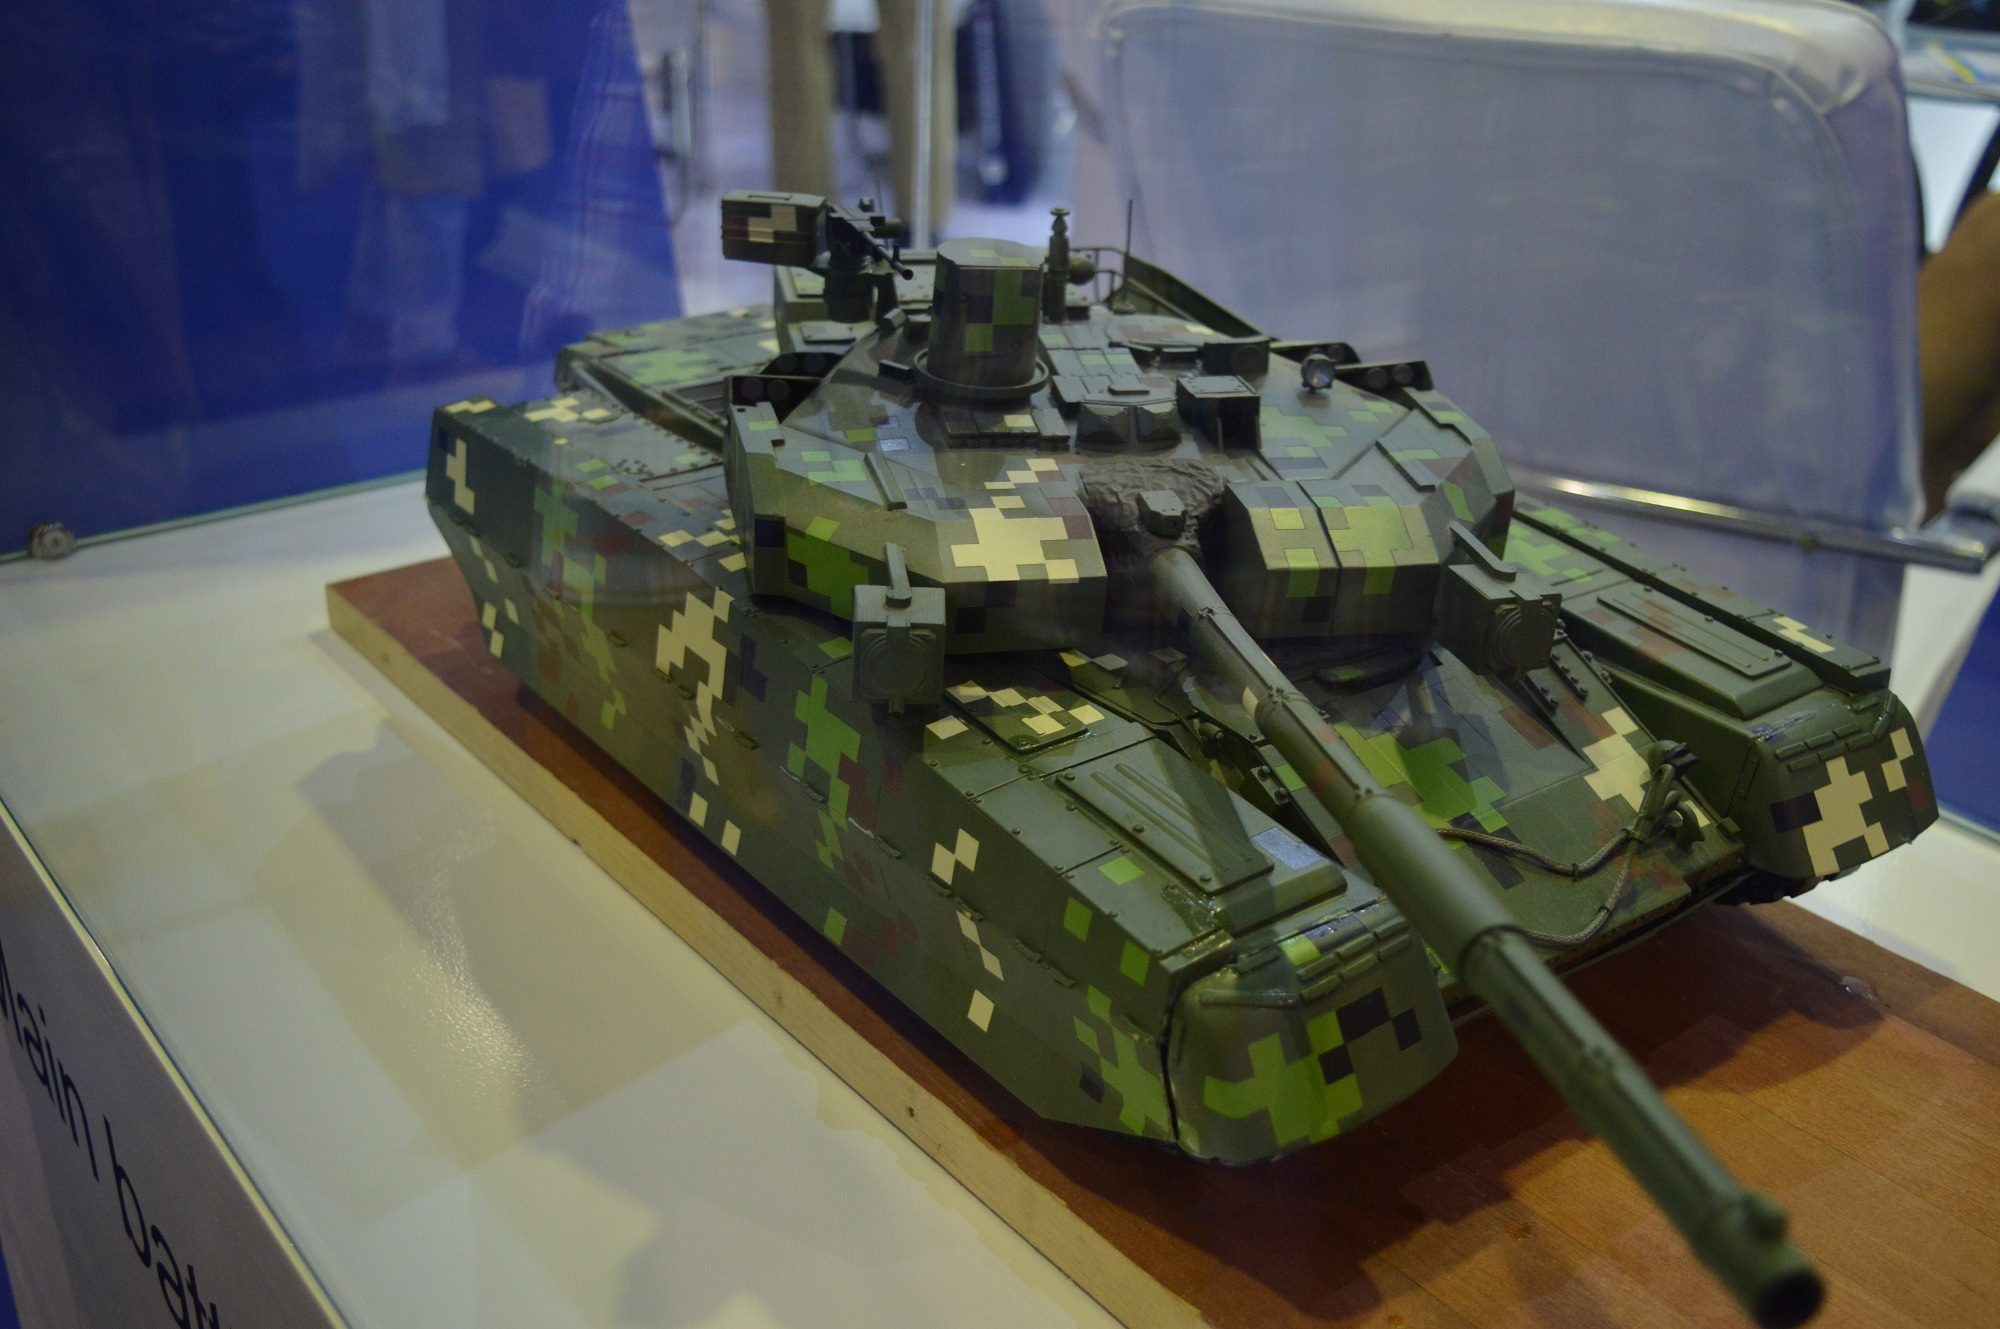 Ukrainian Oplot-M main battle tank creates a sensation at  IDEAS 2016